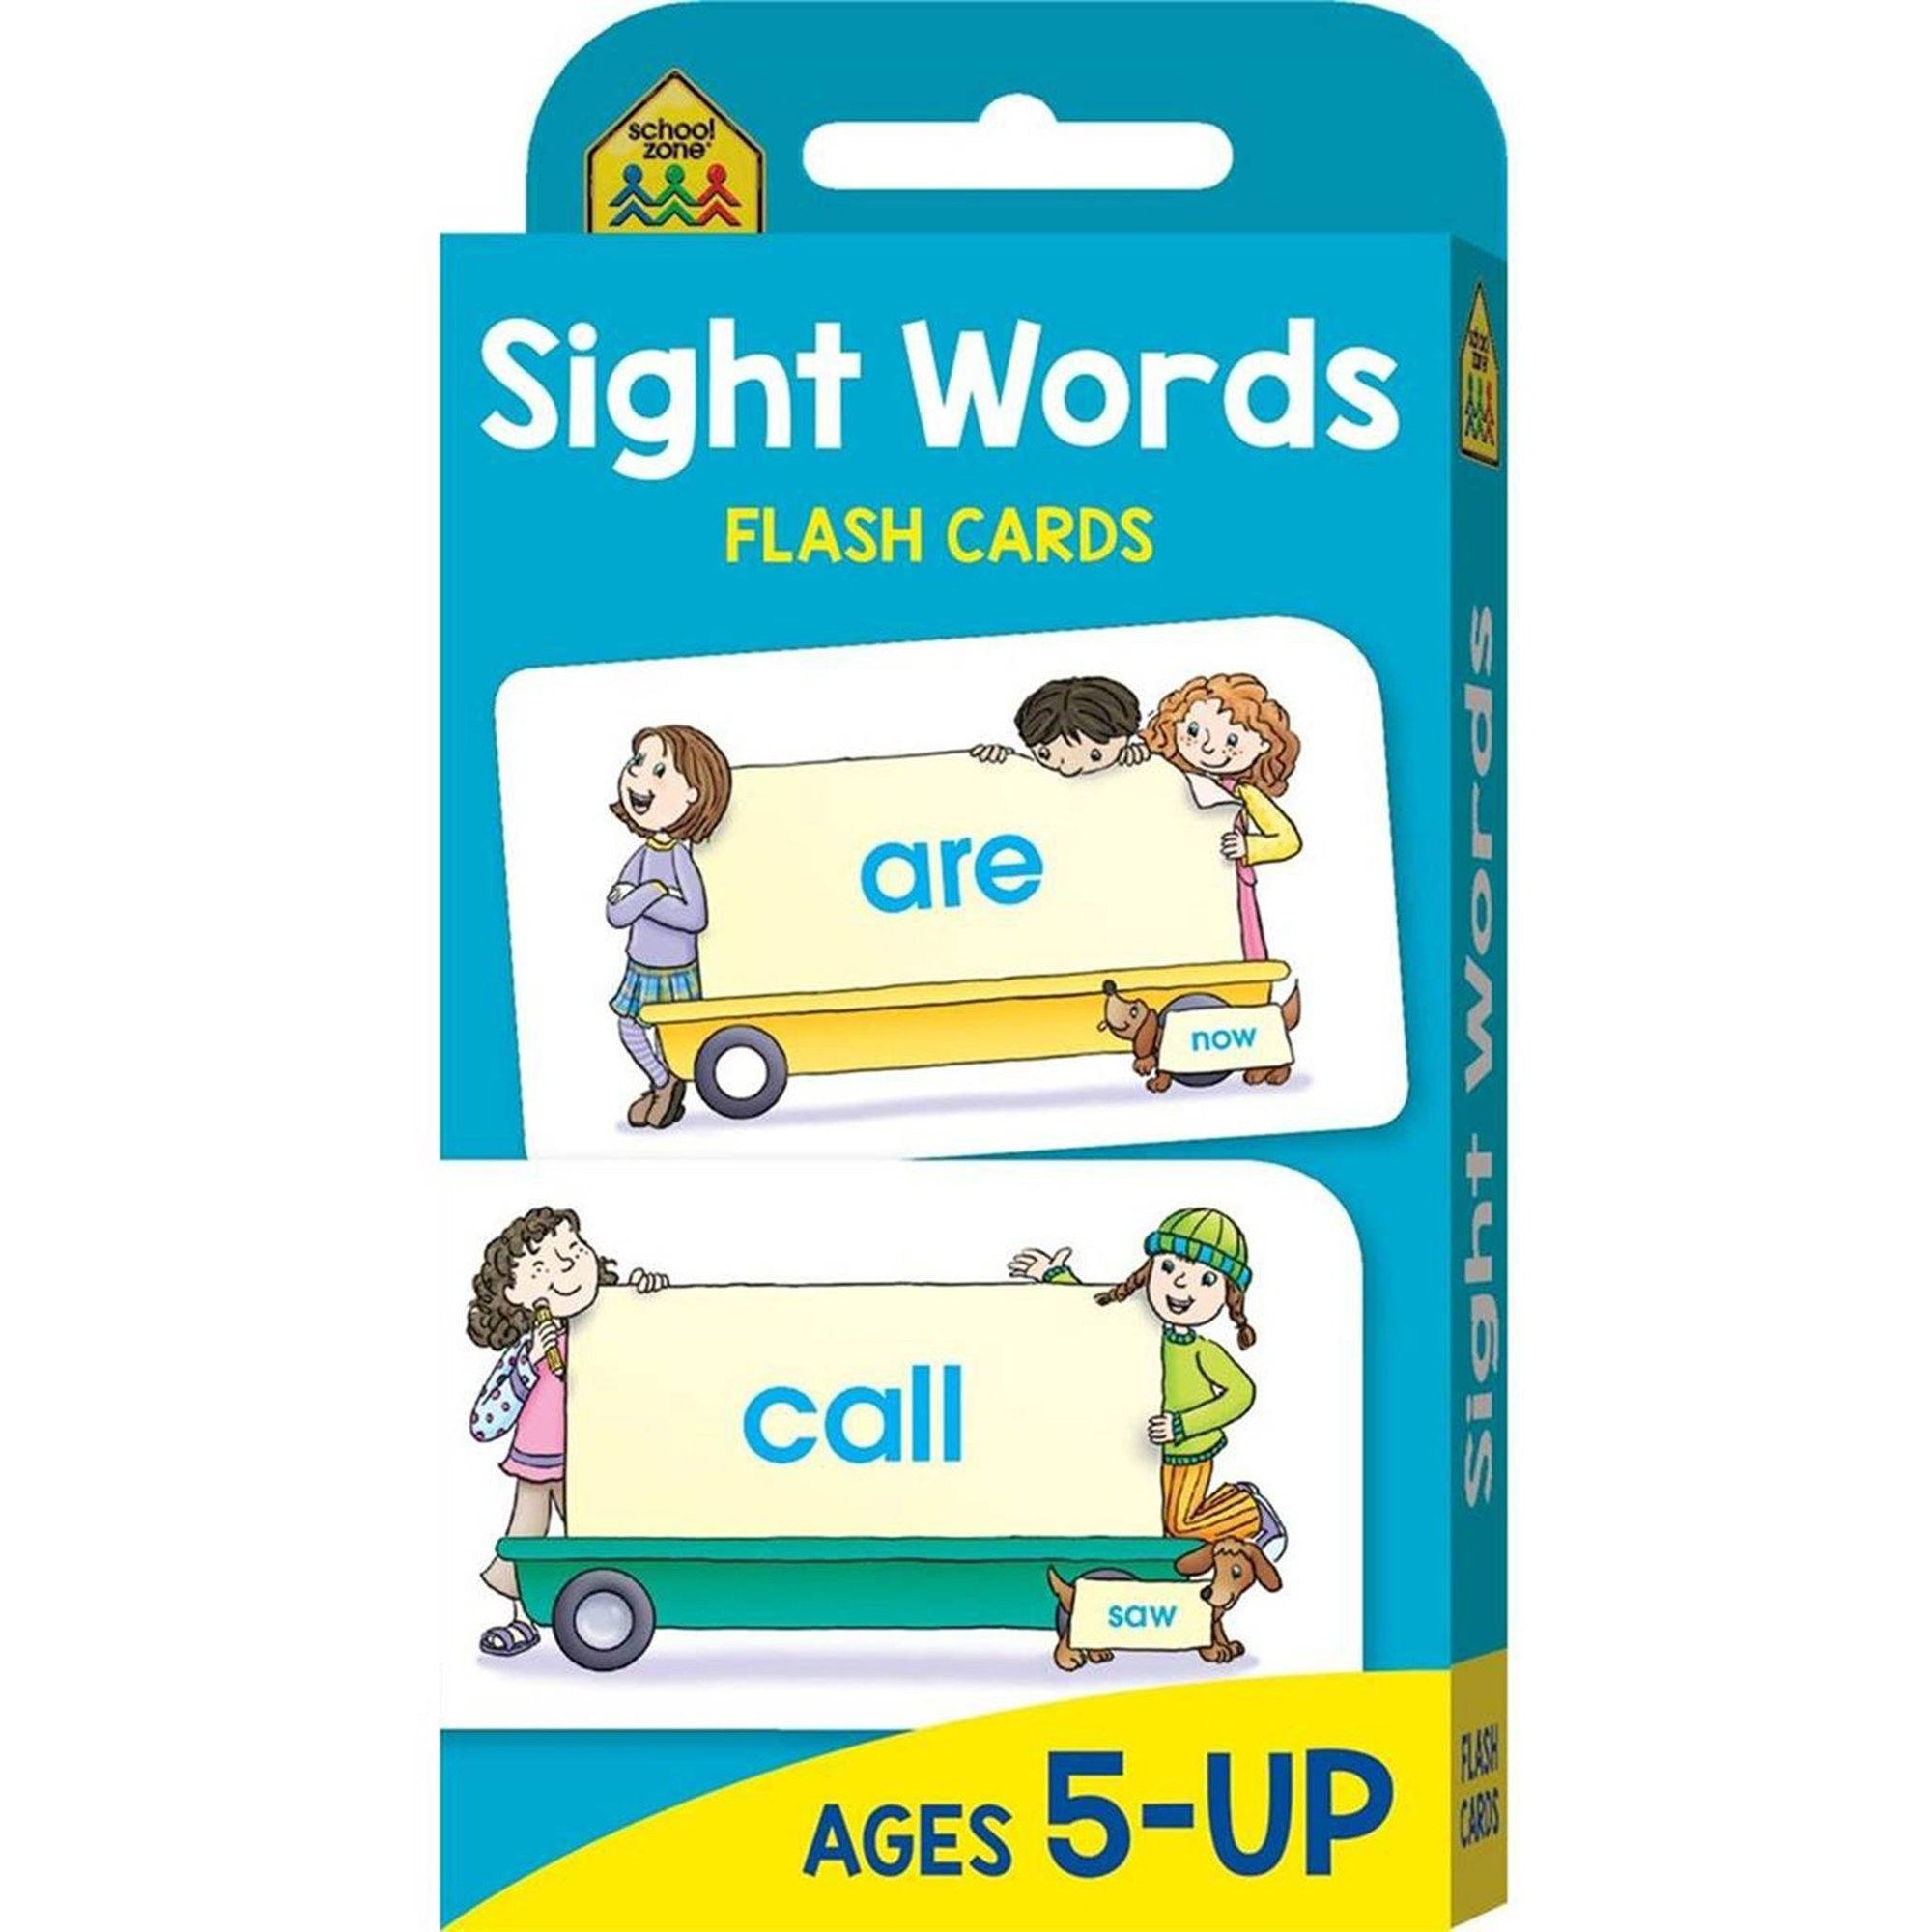 School Zone Giant Workbook (Beginning Reading) & Flashcard Pack (Sight Words) Books Hinkler Books